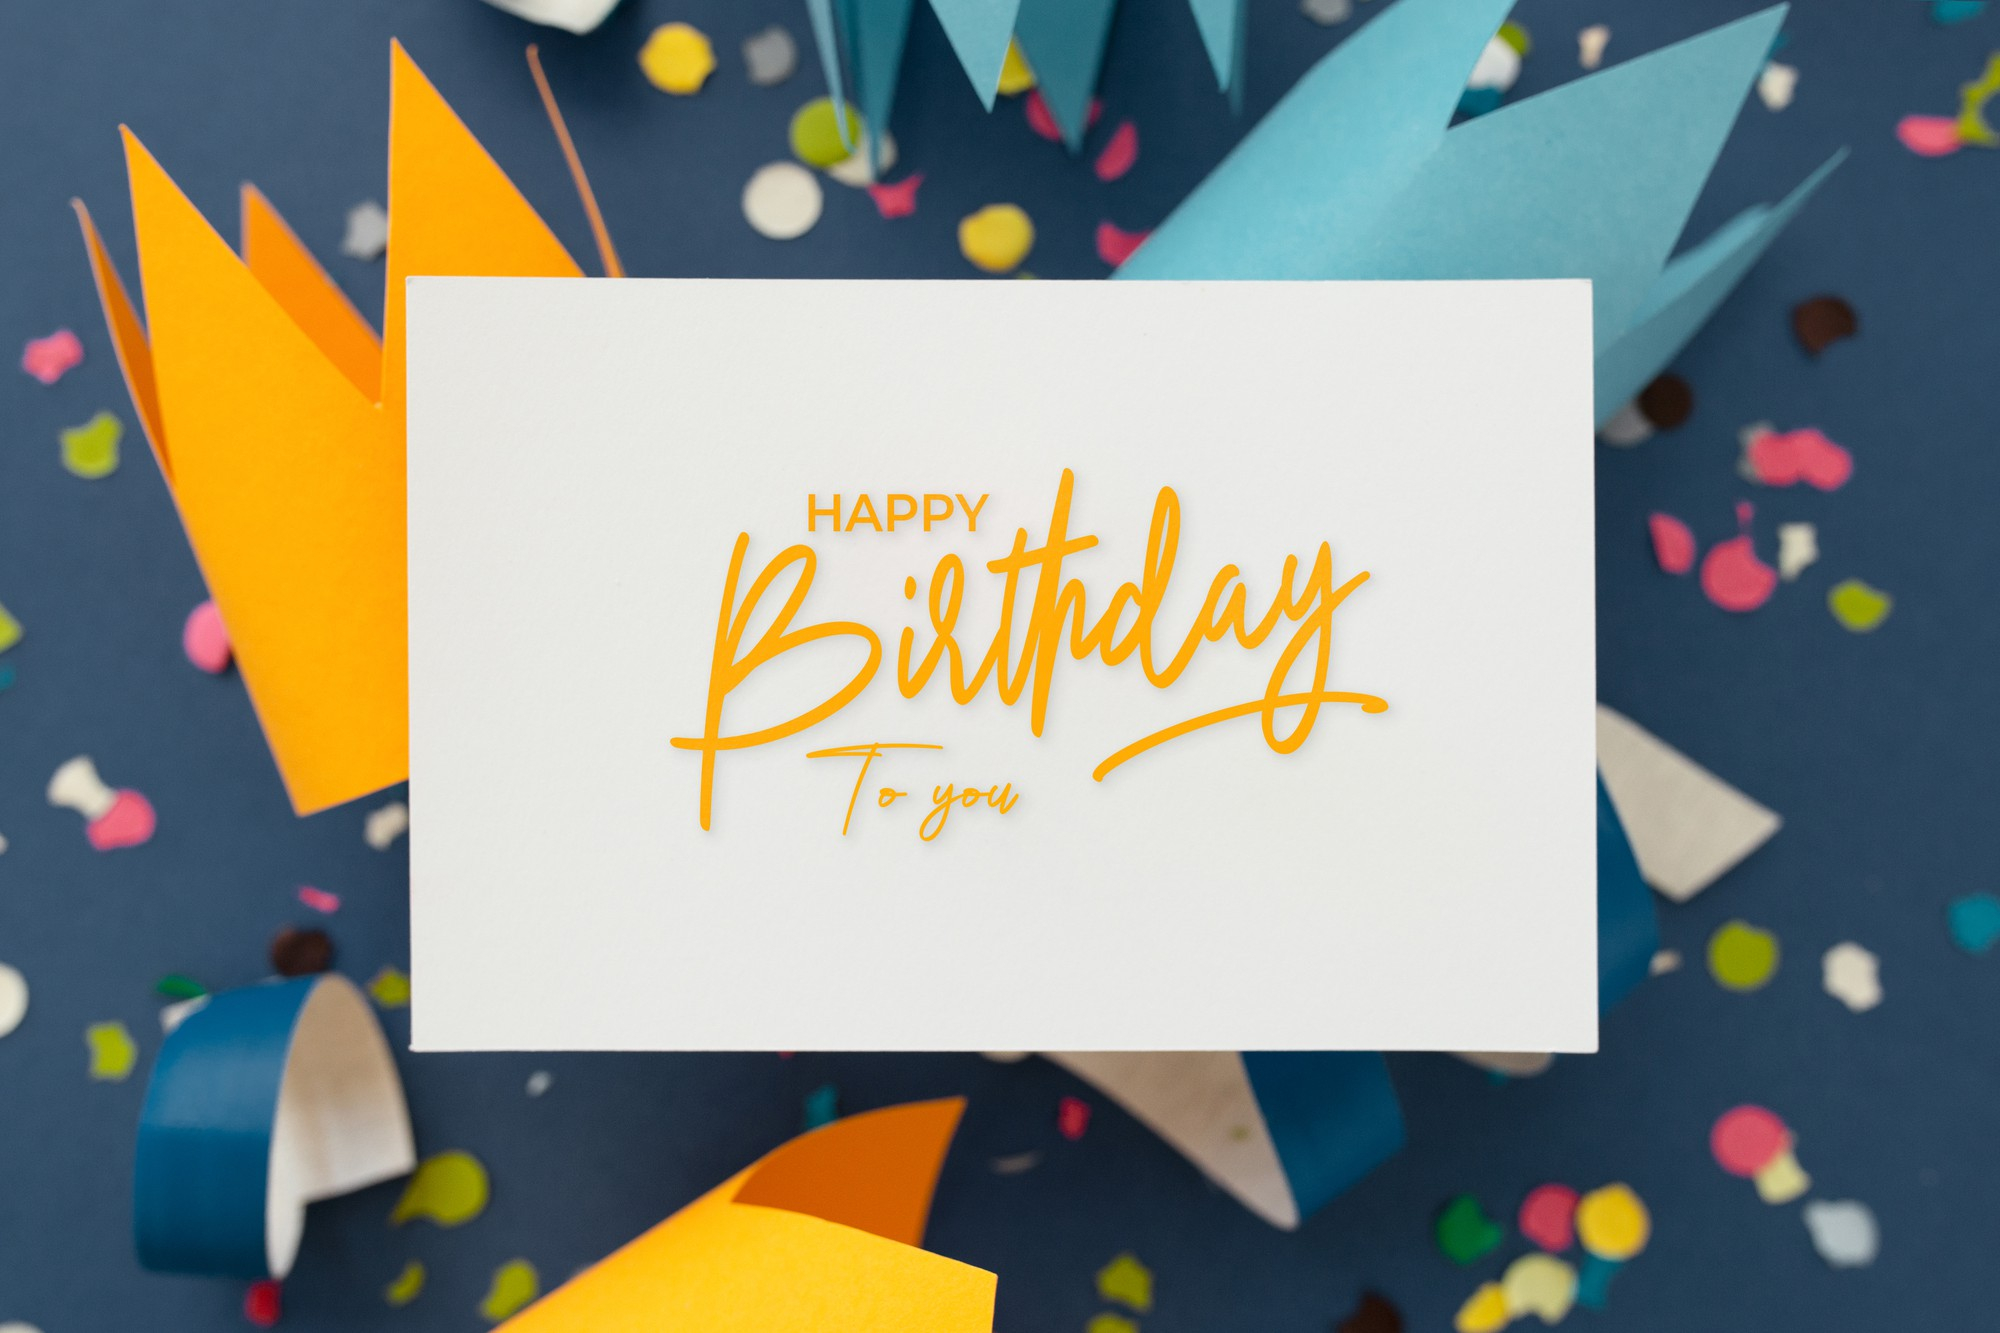 How To Keep Virtual Teams Engaged: Don't Forget Birthdays And Anniversaries